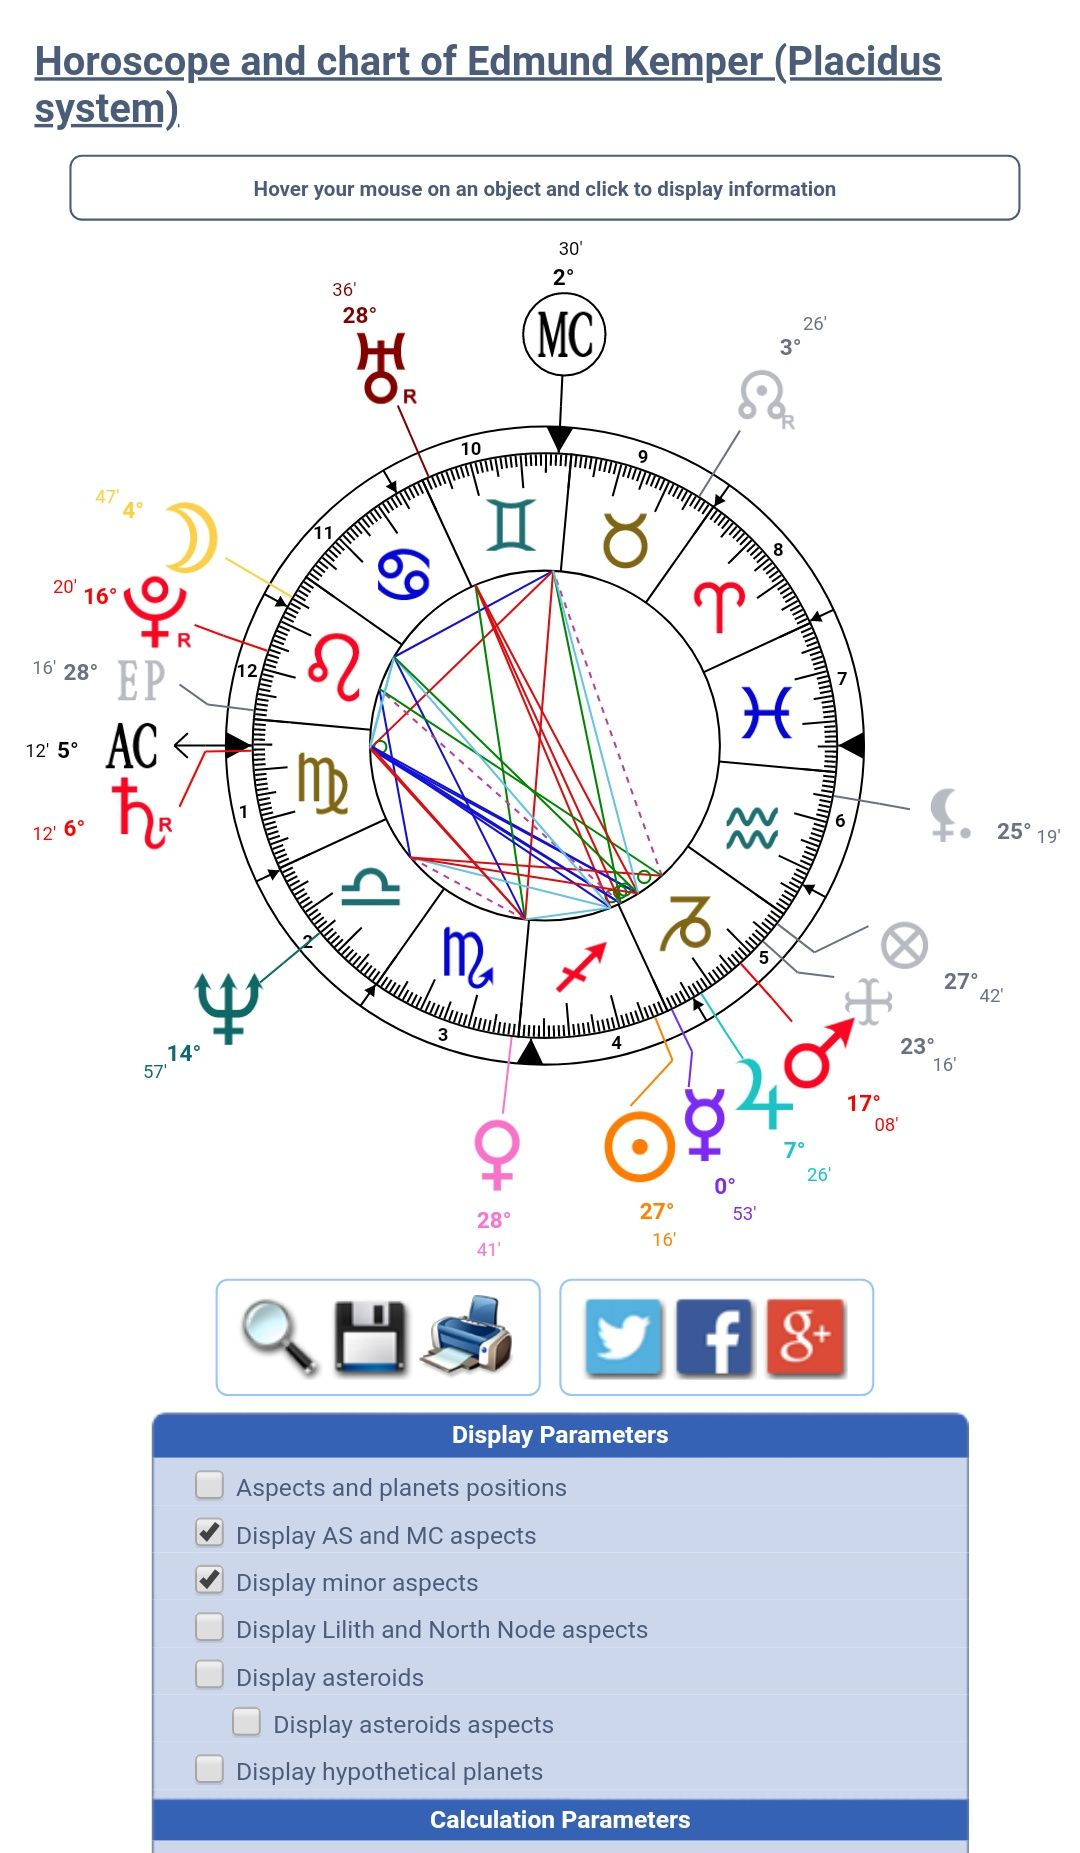 This is Edmund Kemper's birth chart. He is a cold blooded ...